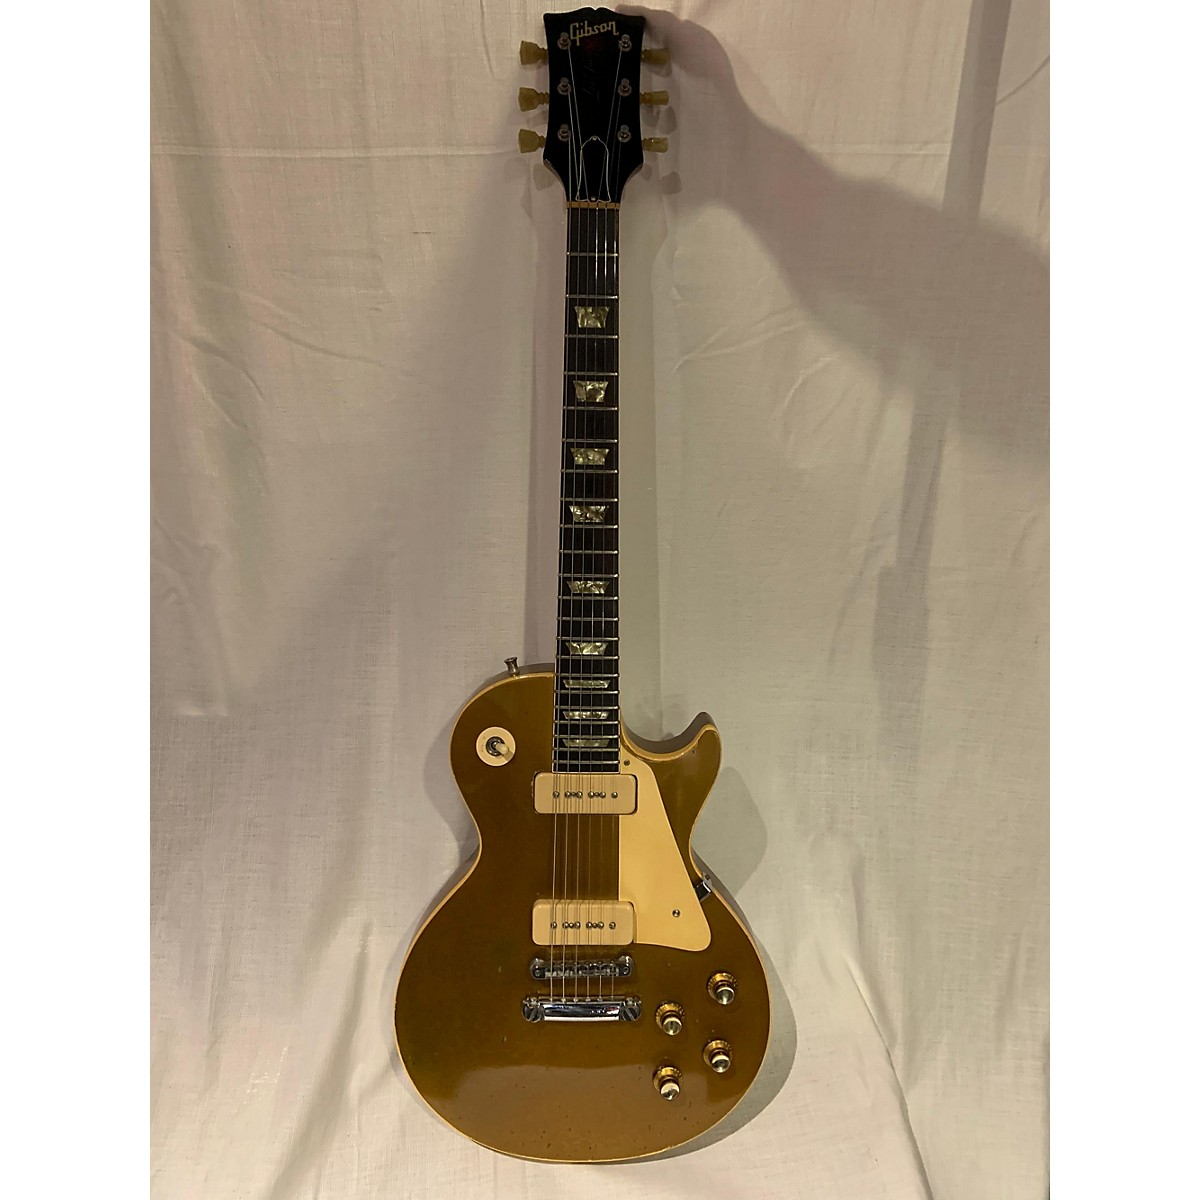 Gibson 1972 1972 Gibson Les Paul Model Gold Top Solid Body Electric Guitar